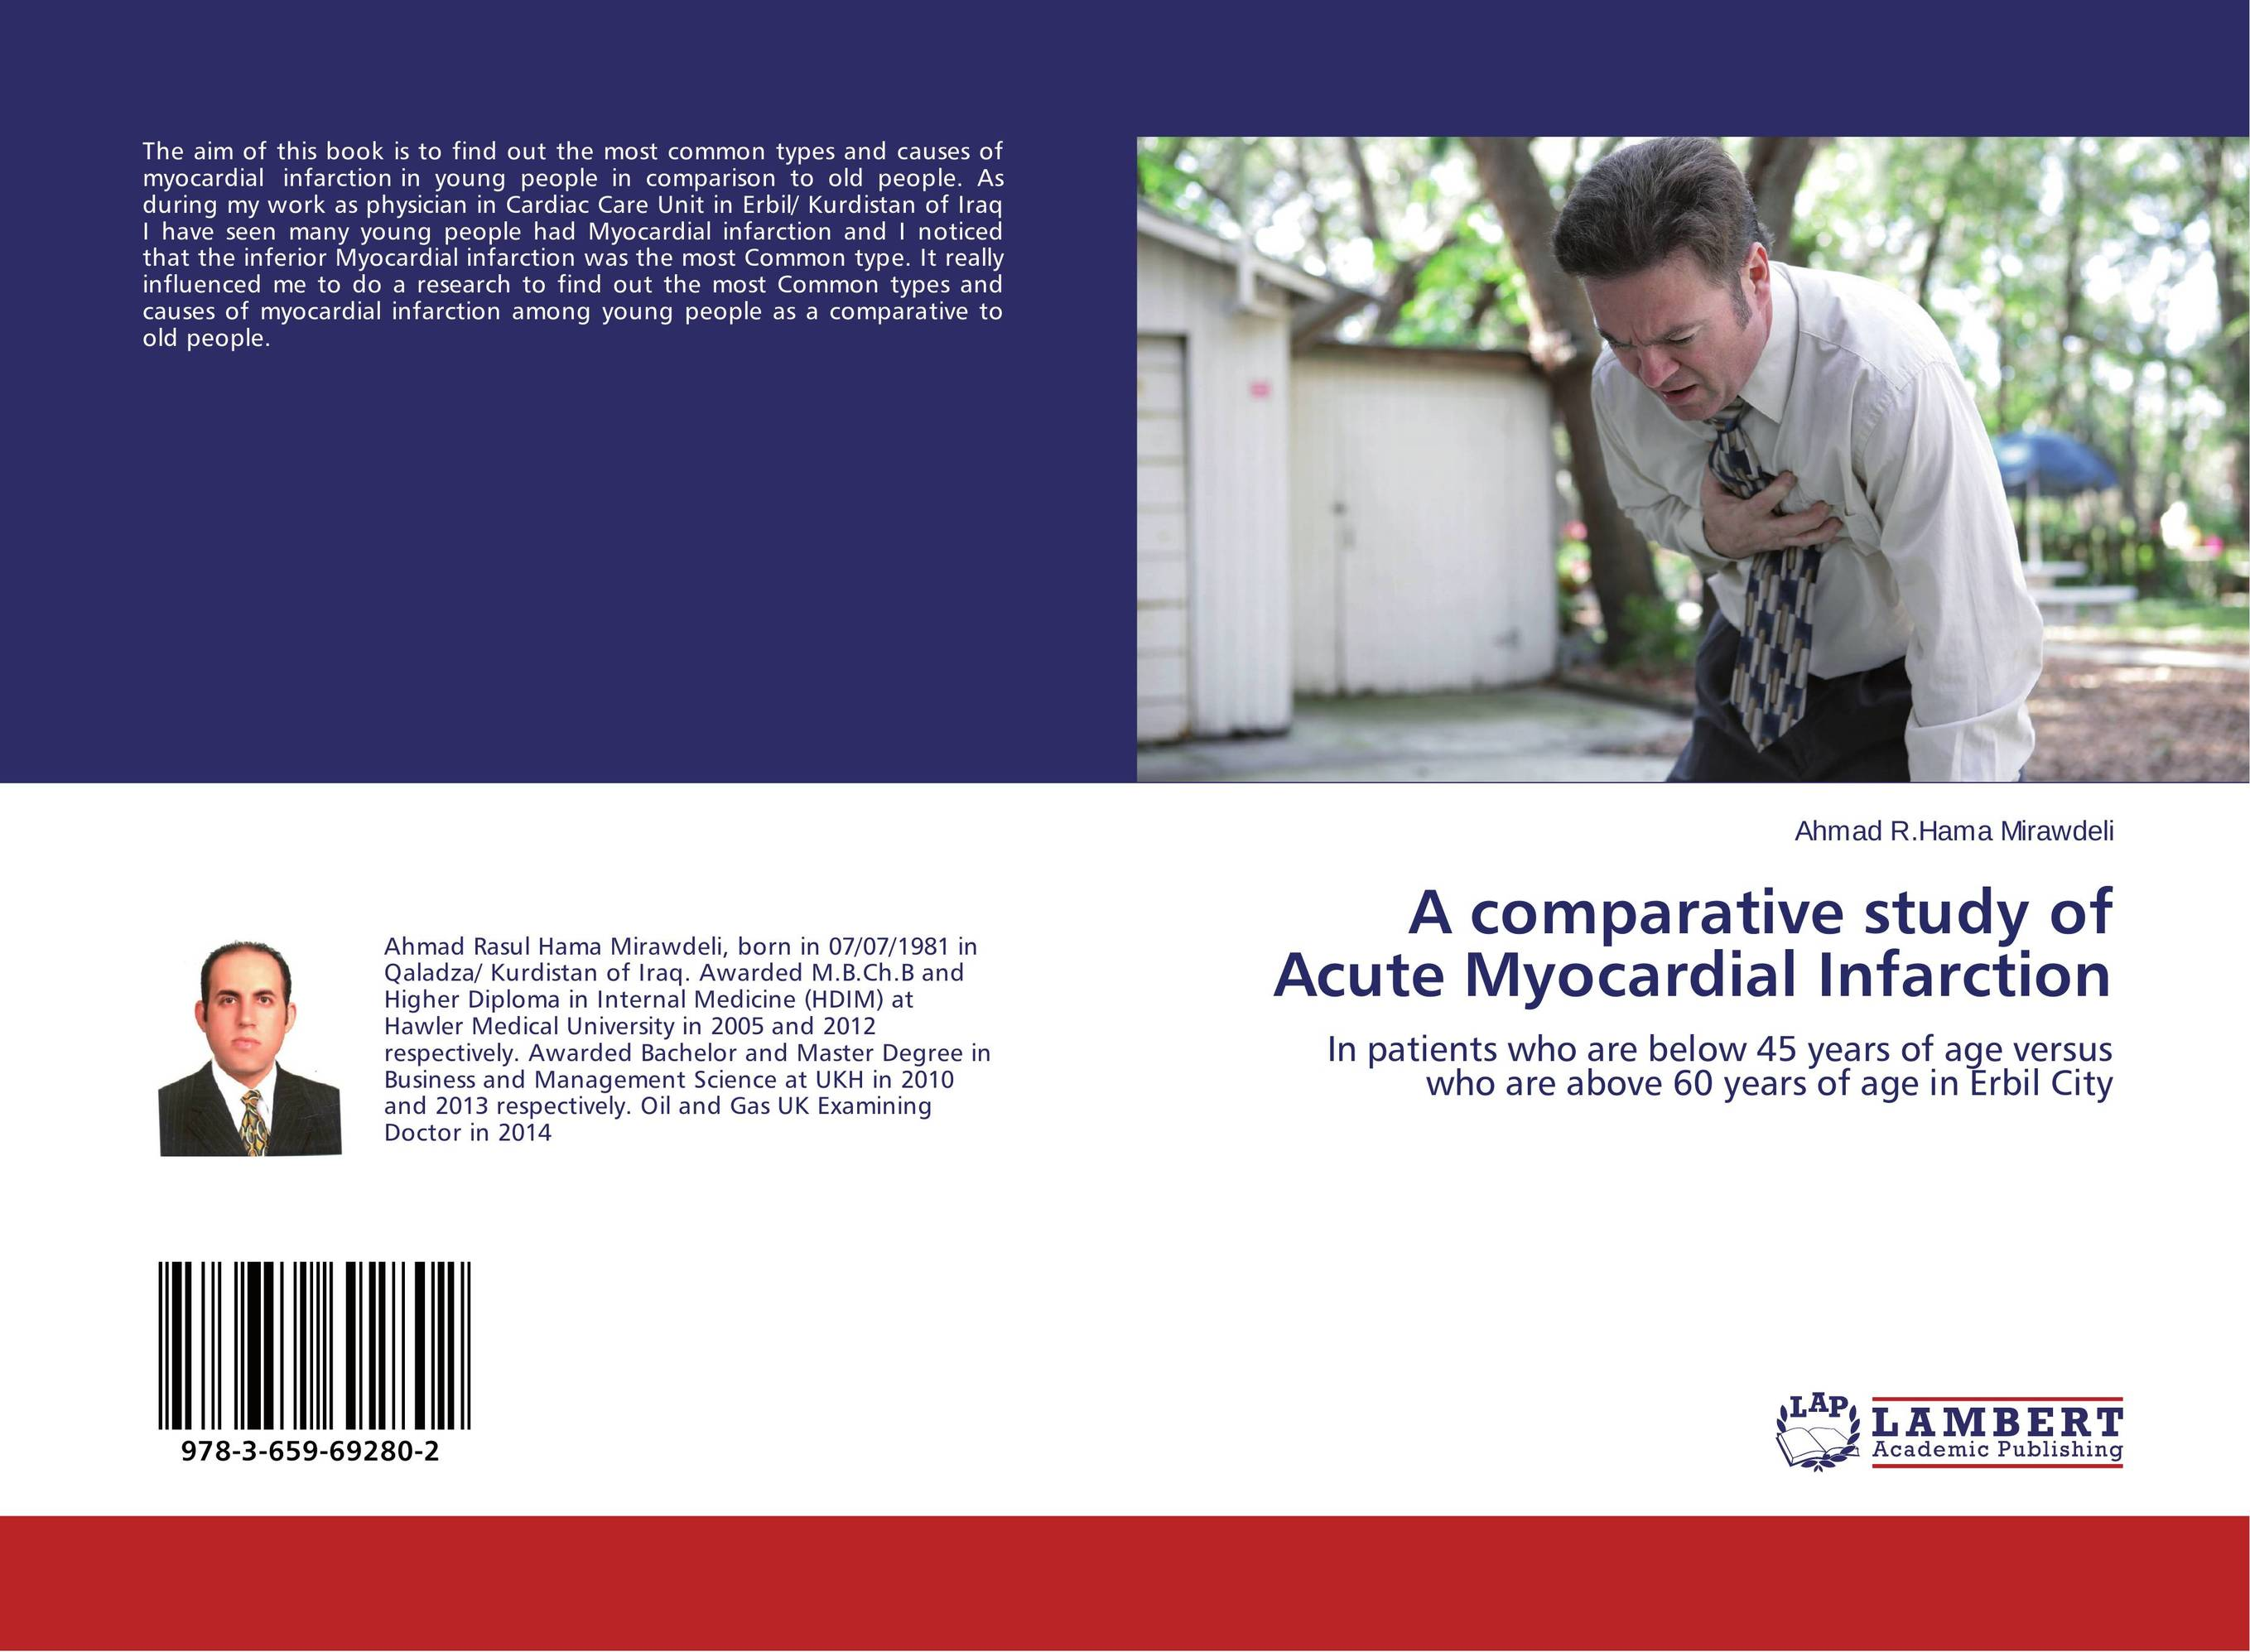 A comparative study of Acute Myocardial Infarction metabolic syndrome in patients with acute myocardial infarction